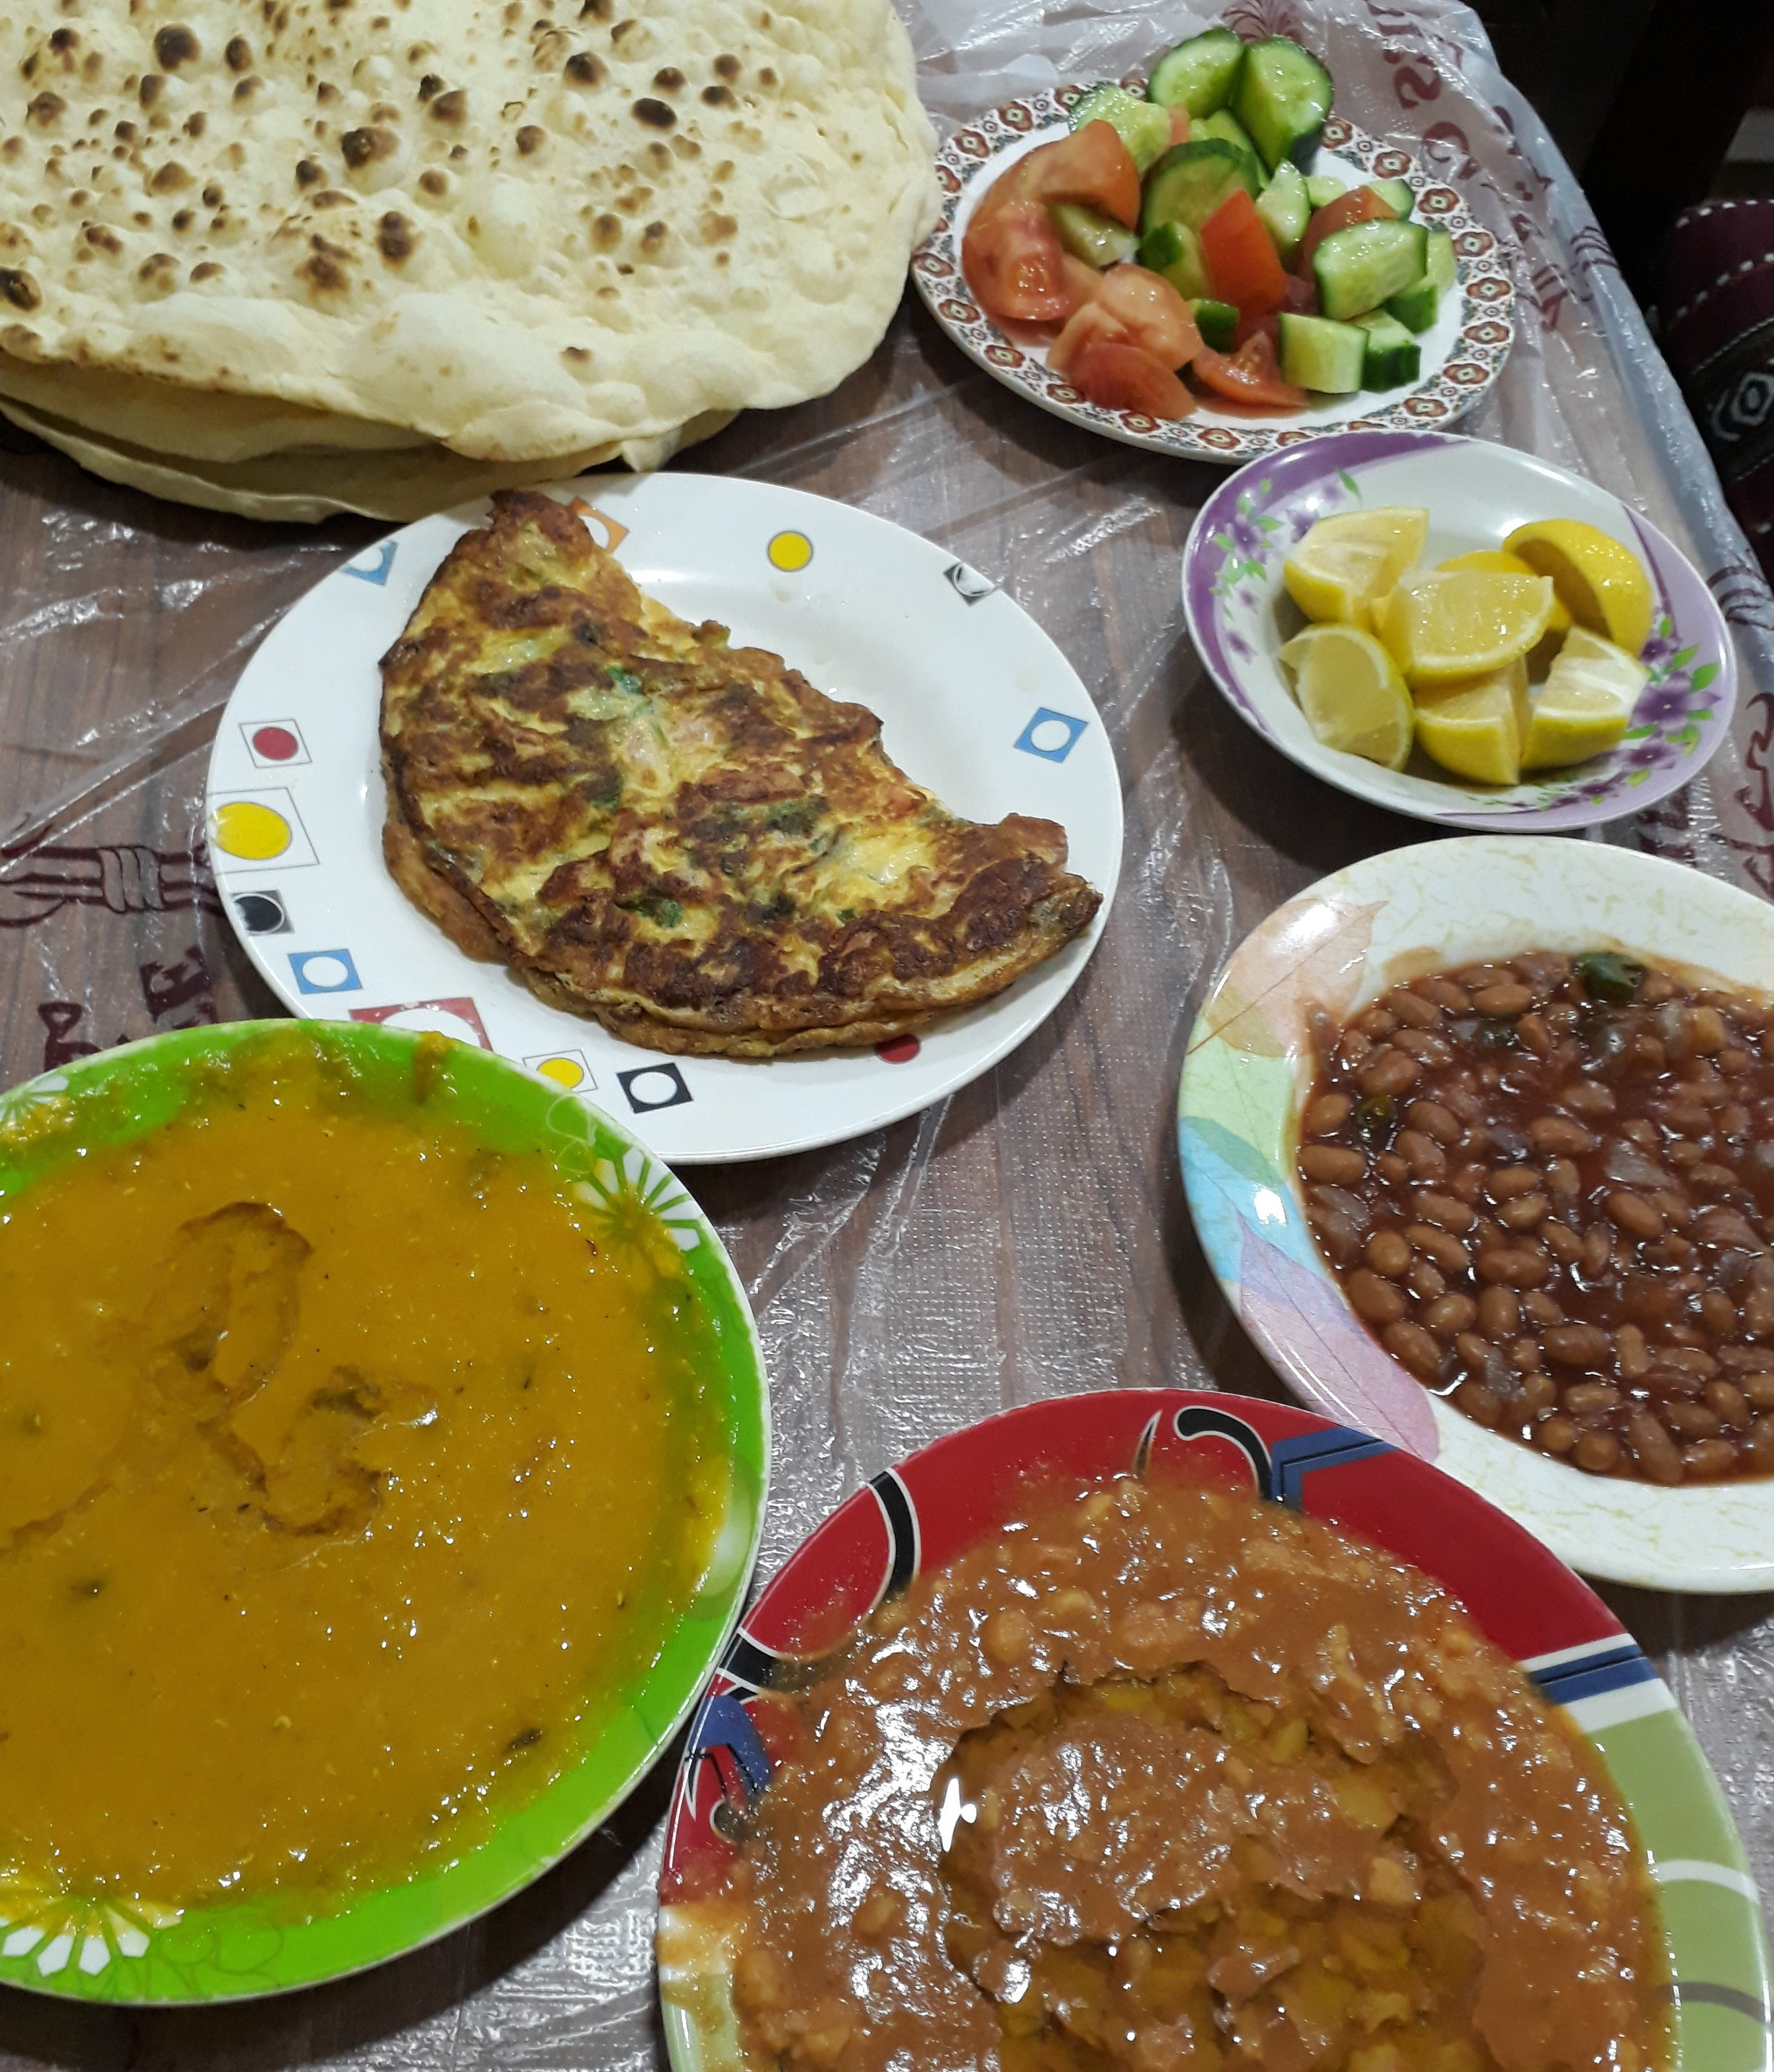 Traditional breakfast in Bahrain